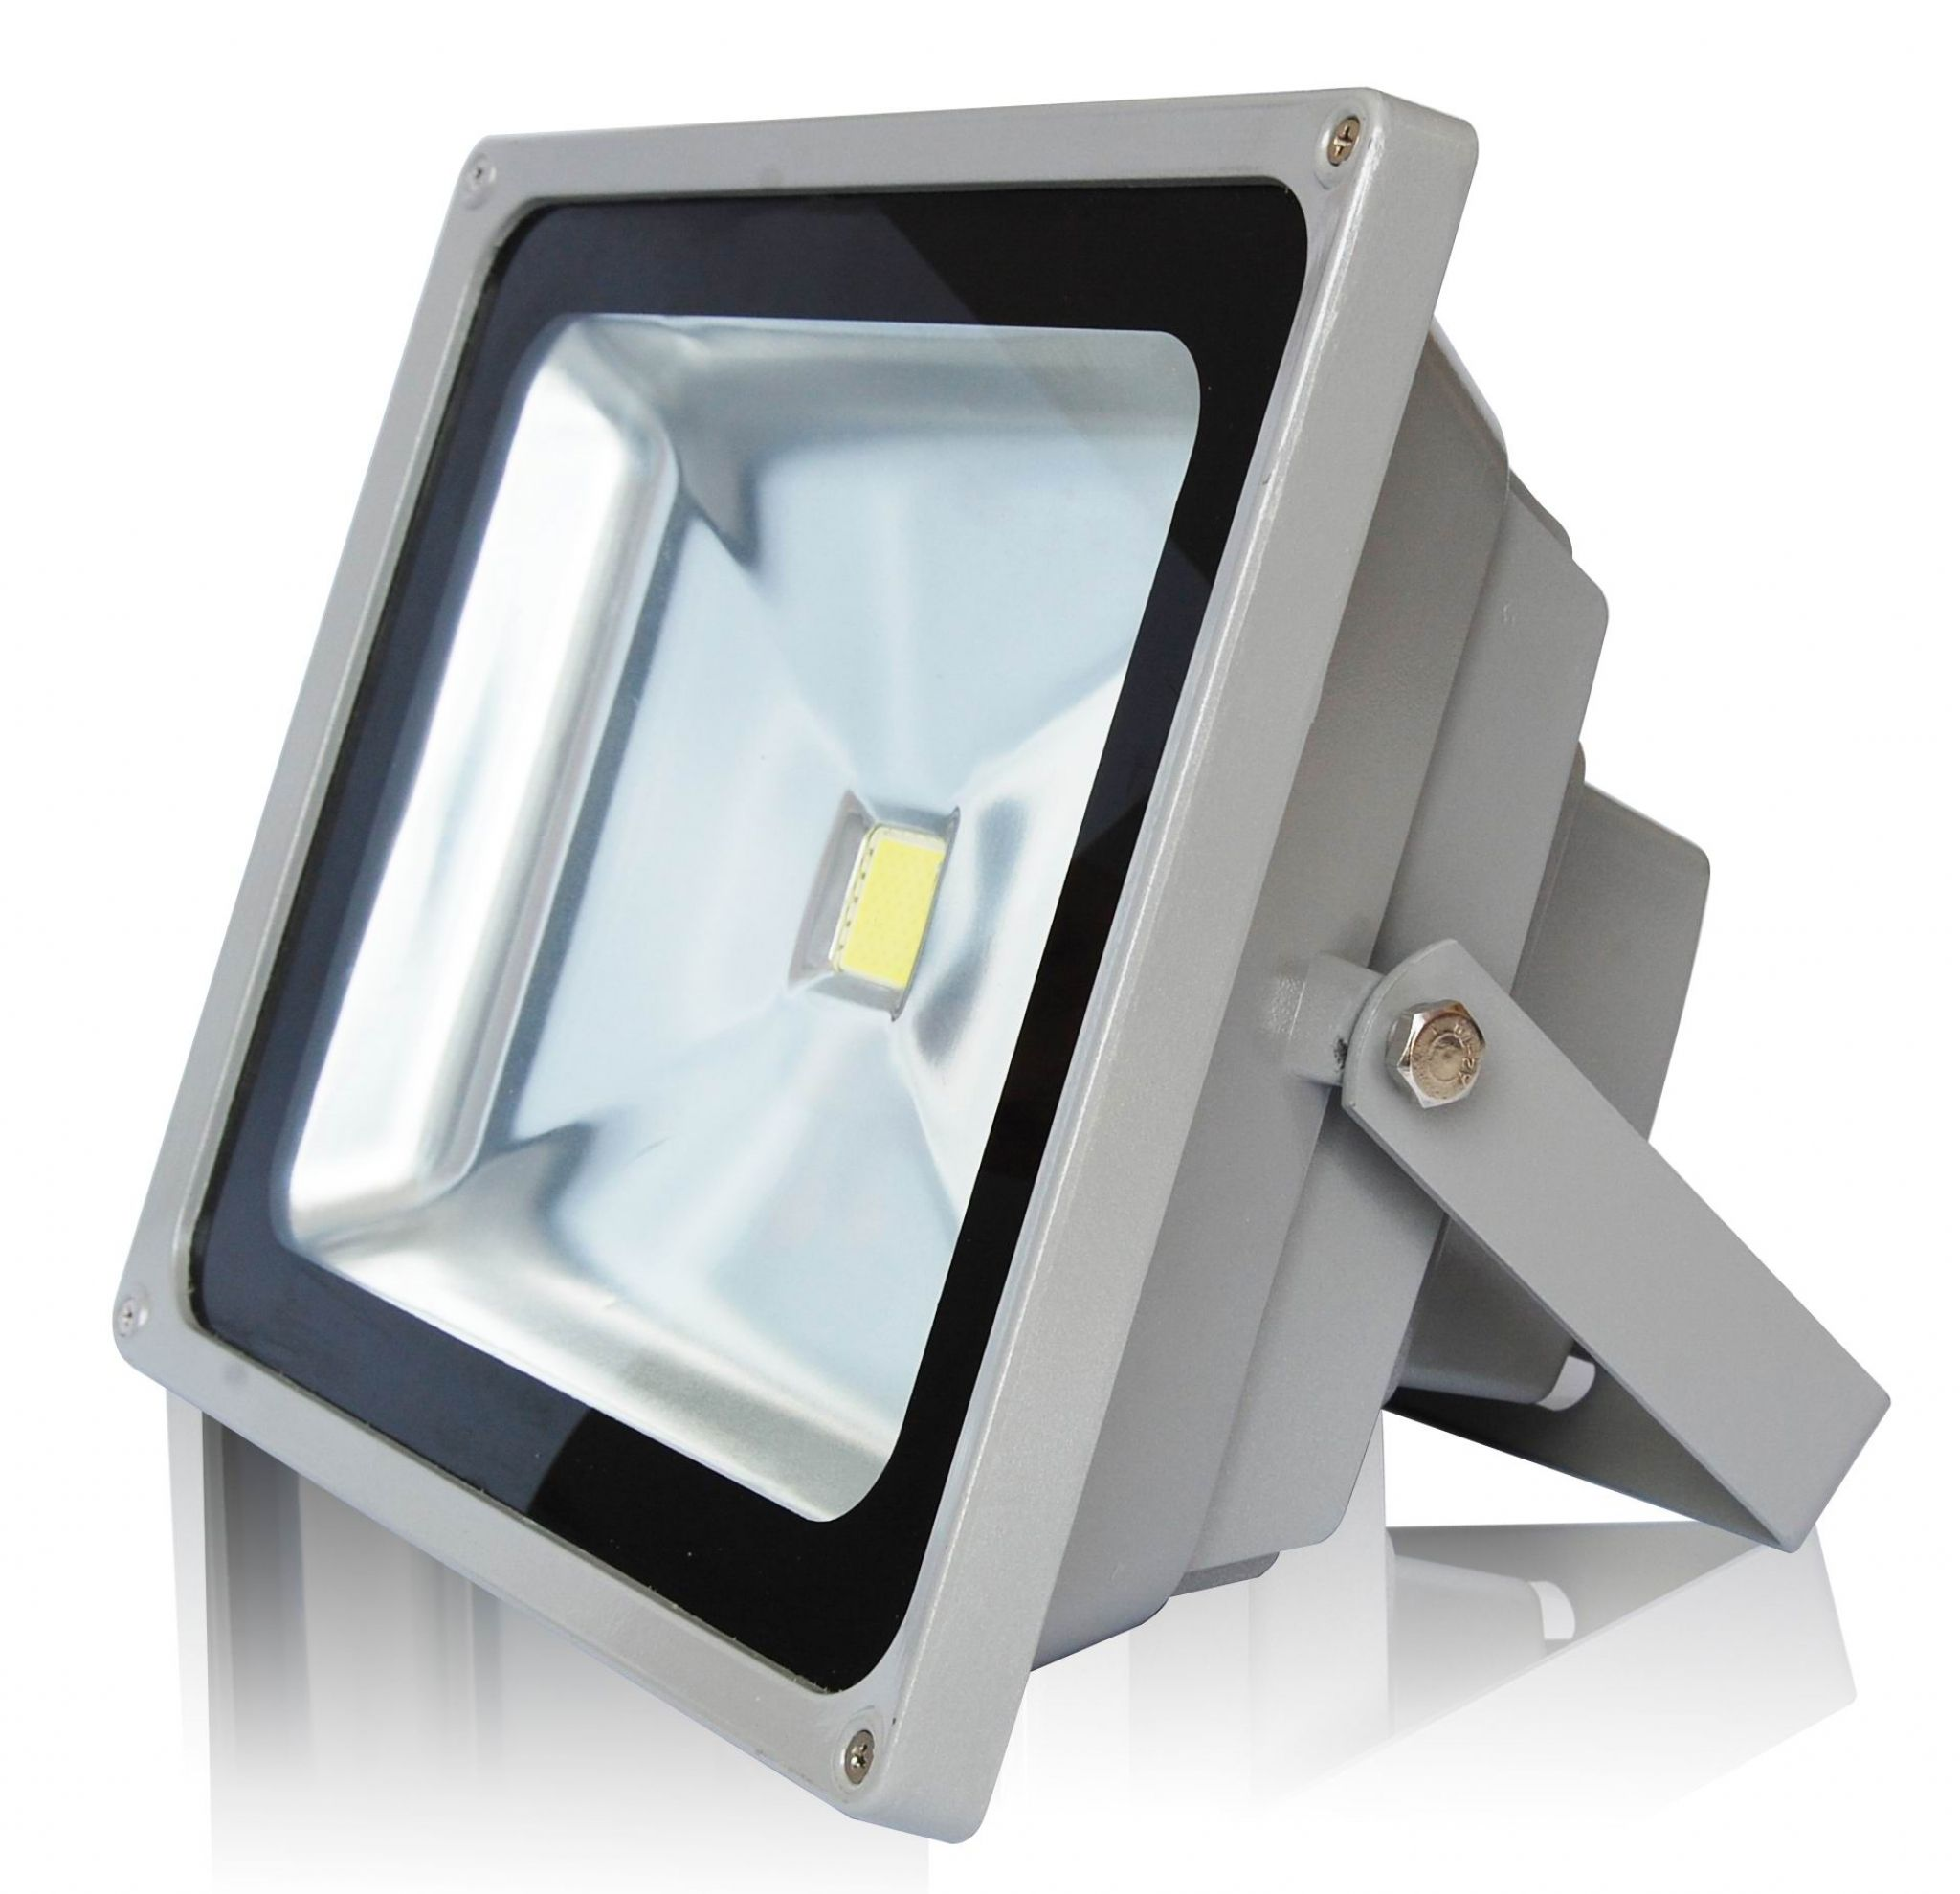 Outdoor Flood Light Fixtures Waterproof What Is The Best Interior Paint Check More At Http Www Mtba Led Lighting Home Led Flood Lights Led Outdoor Lighting